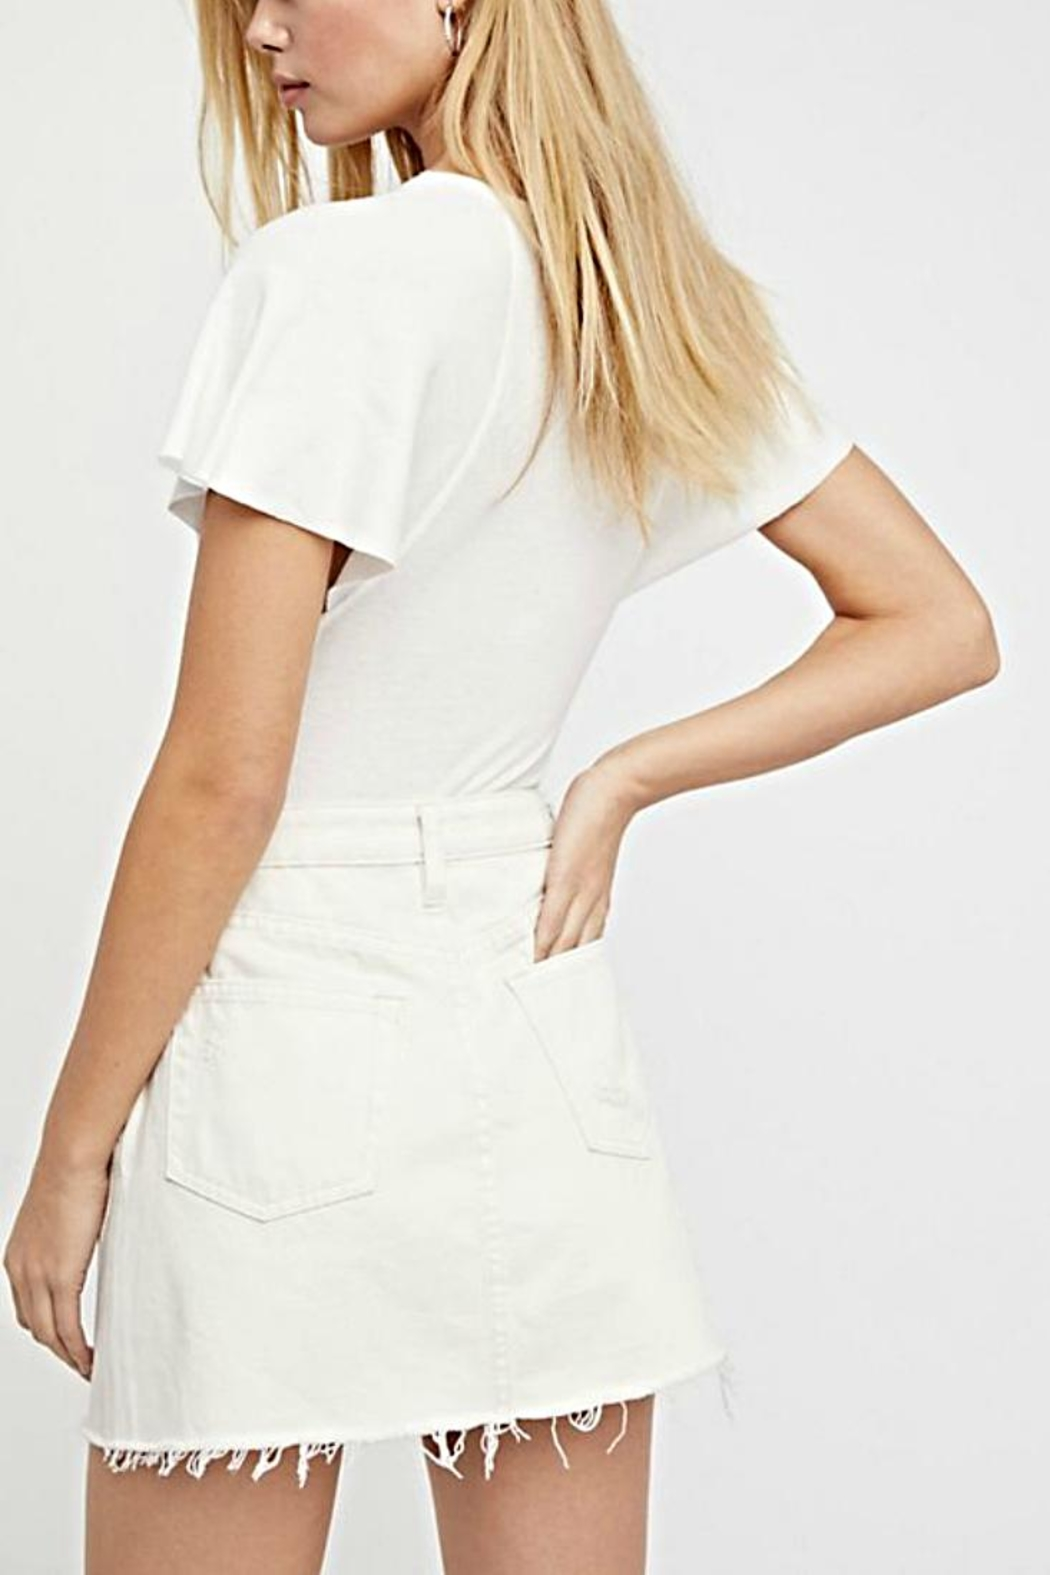 Free People A-Line Denim Skirt - Front Full Image